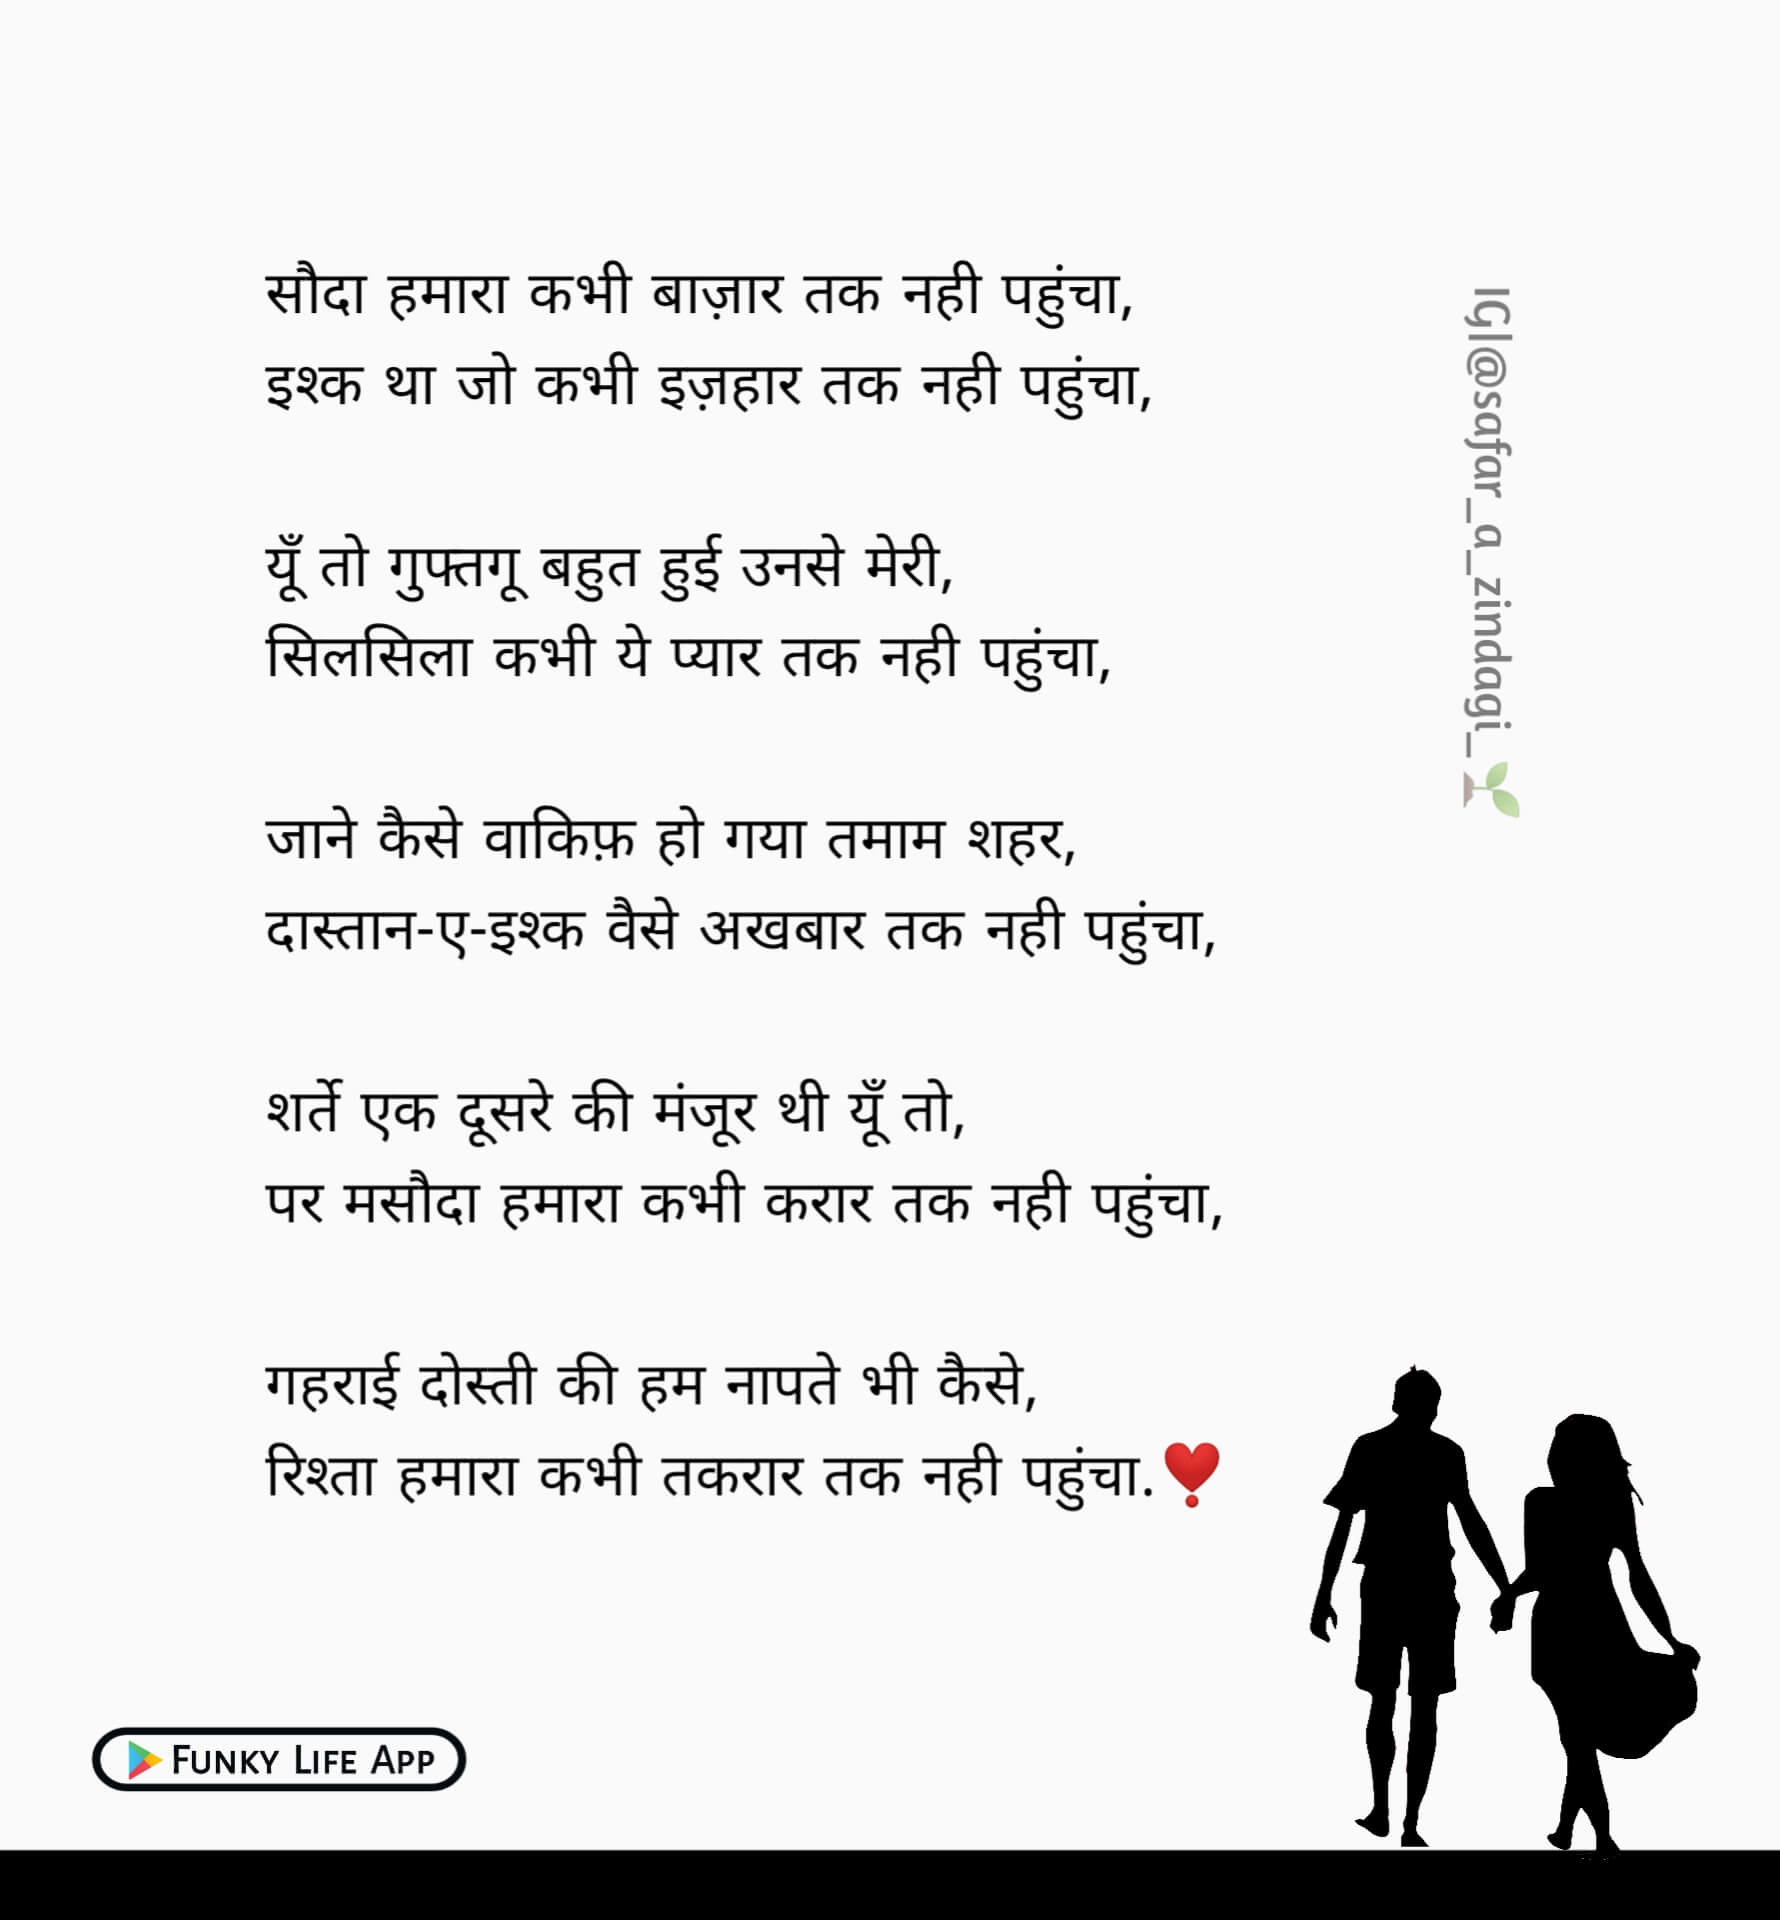 Hindi Poetry Hindi Kavita Funky Life 23